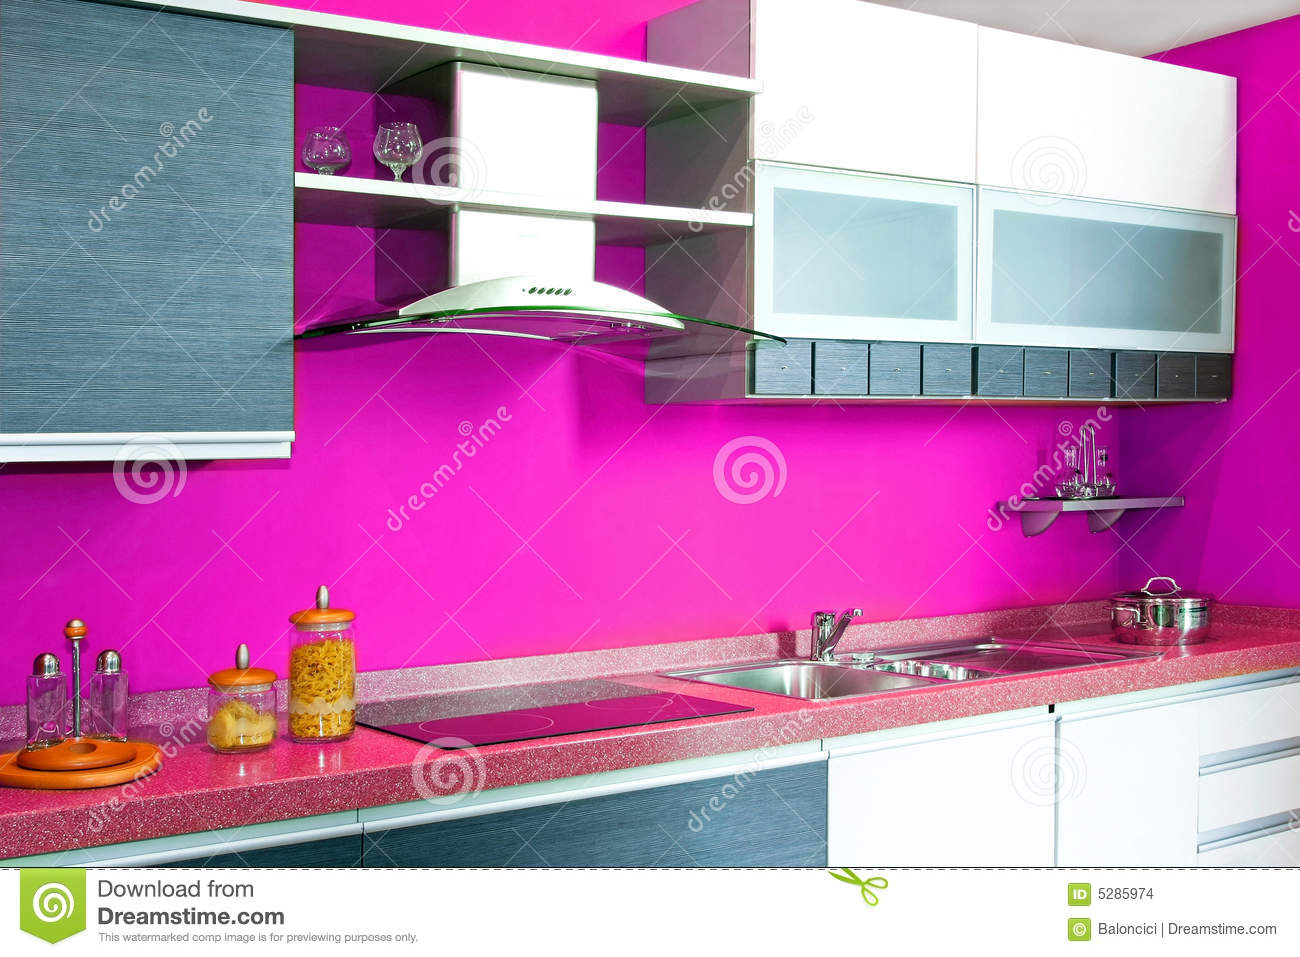 Gallery For > Kitchen Counter Clipart